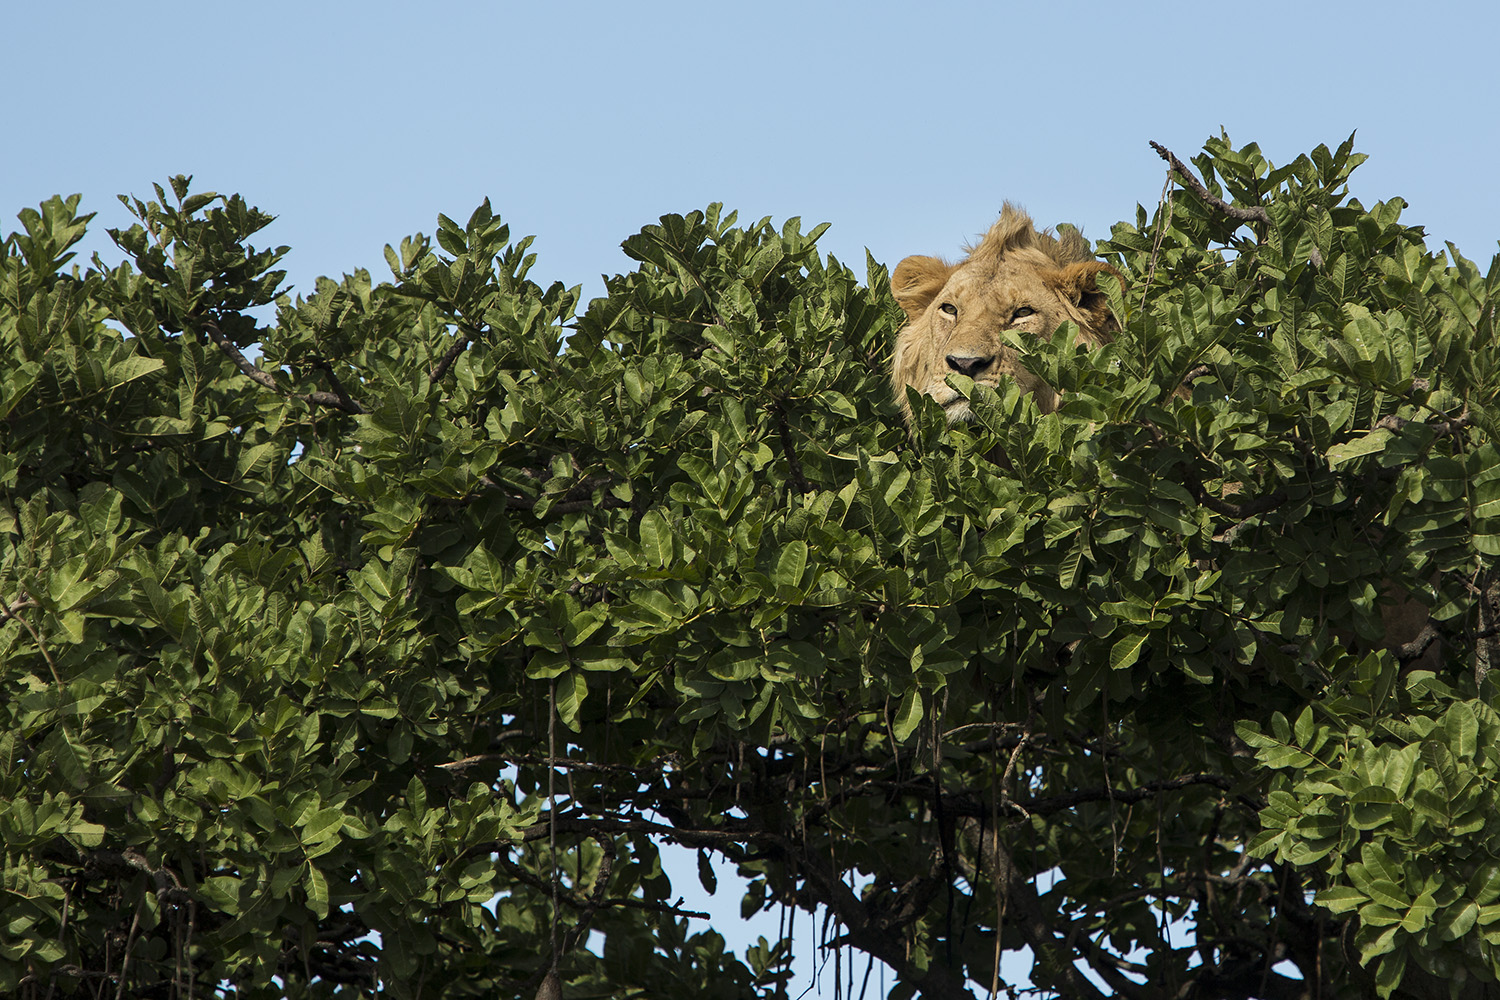 Lion male in tree close